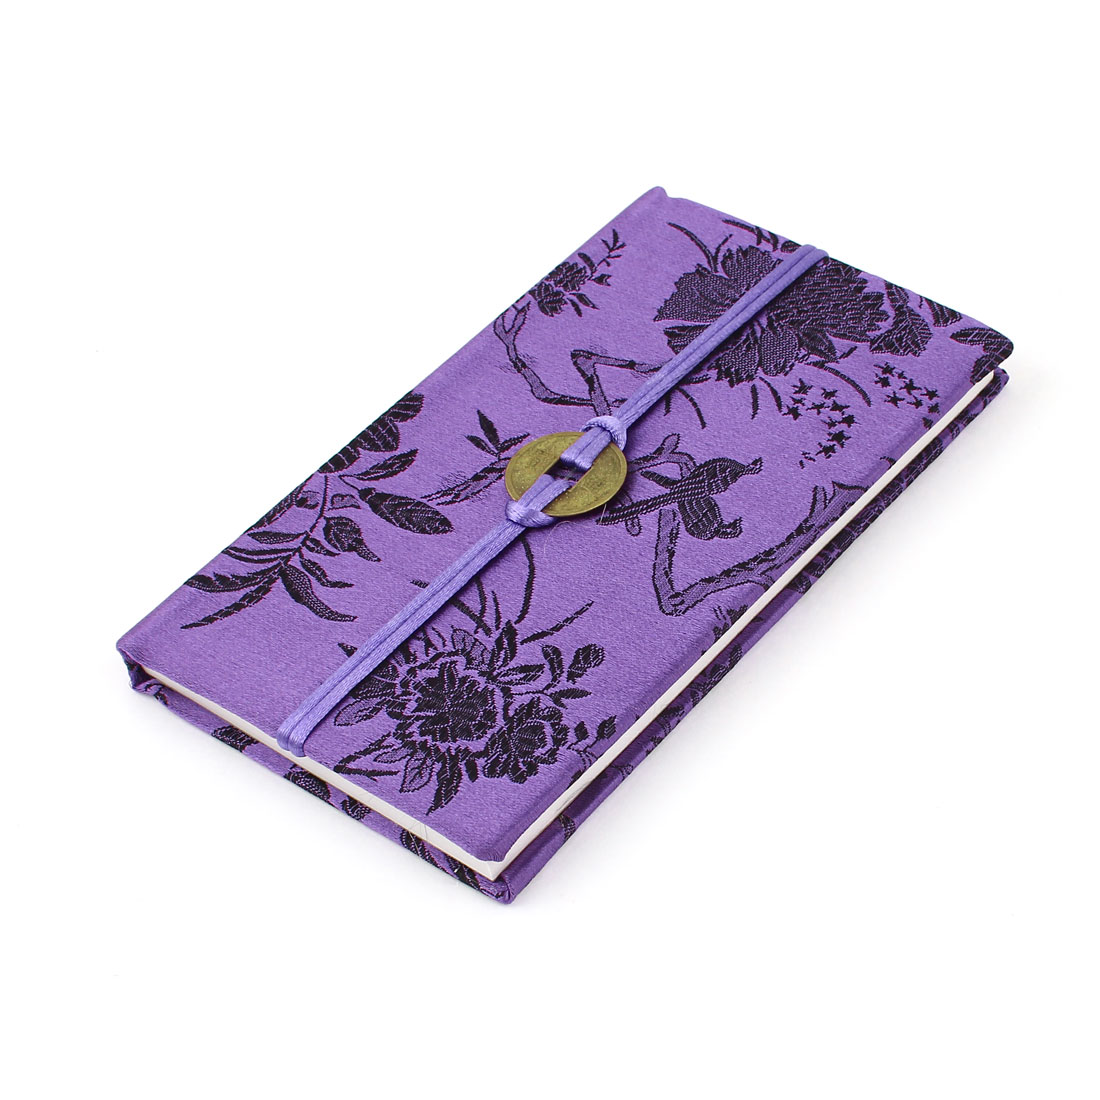 Embroidery Floral Pattern Nylon Coated Copper Coin String Decor Memo Book Notepad Purple